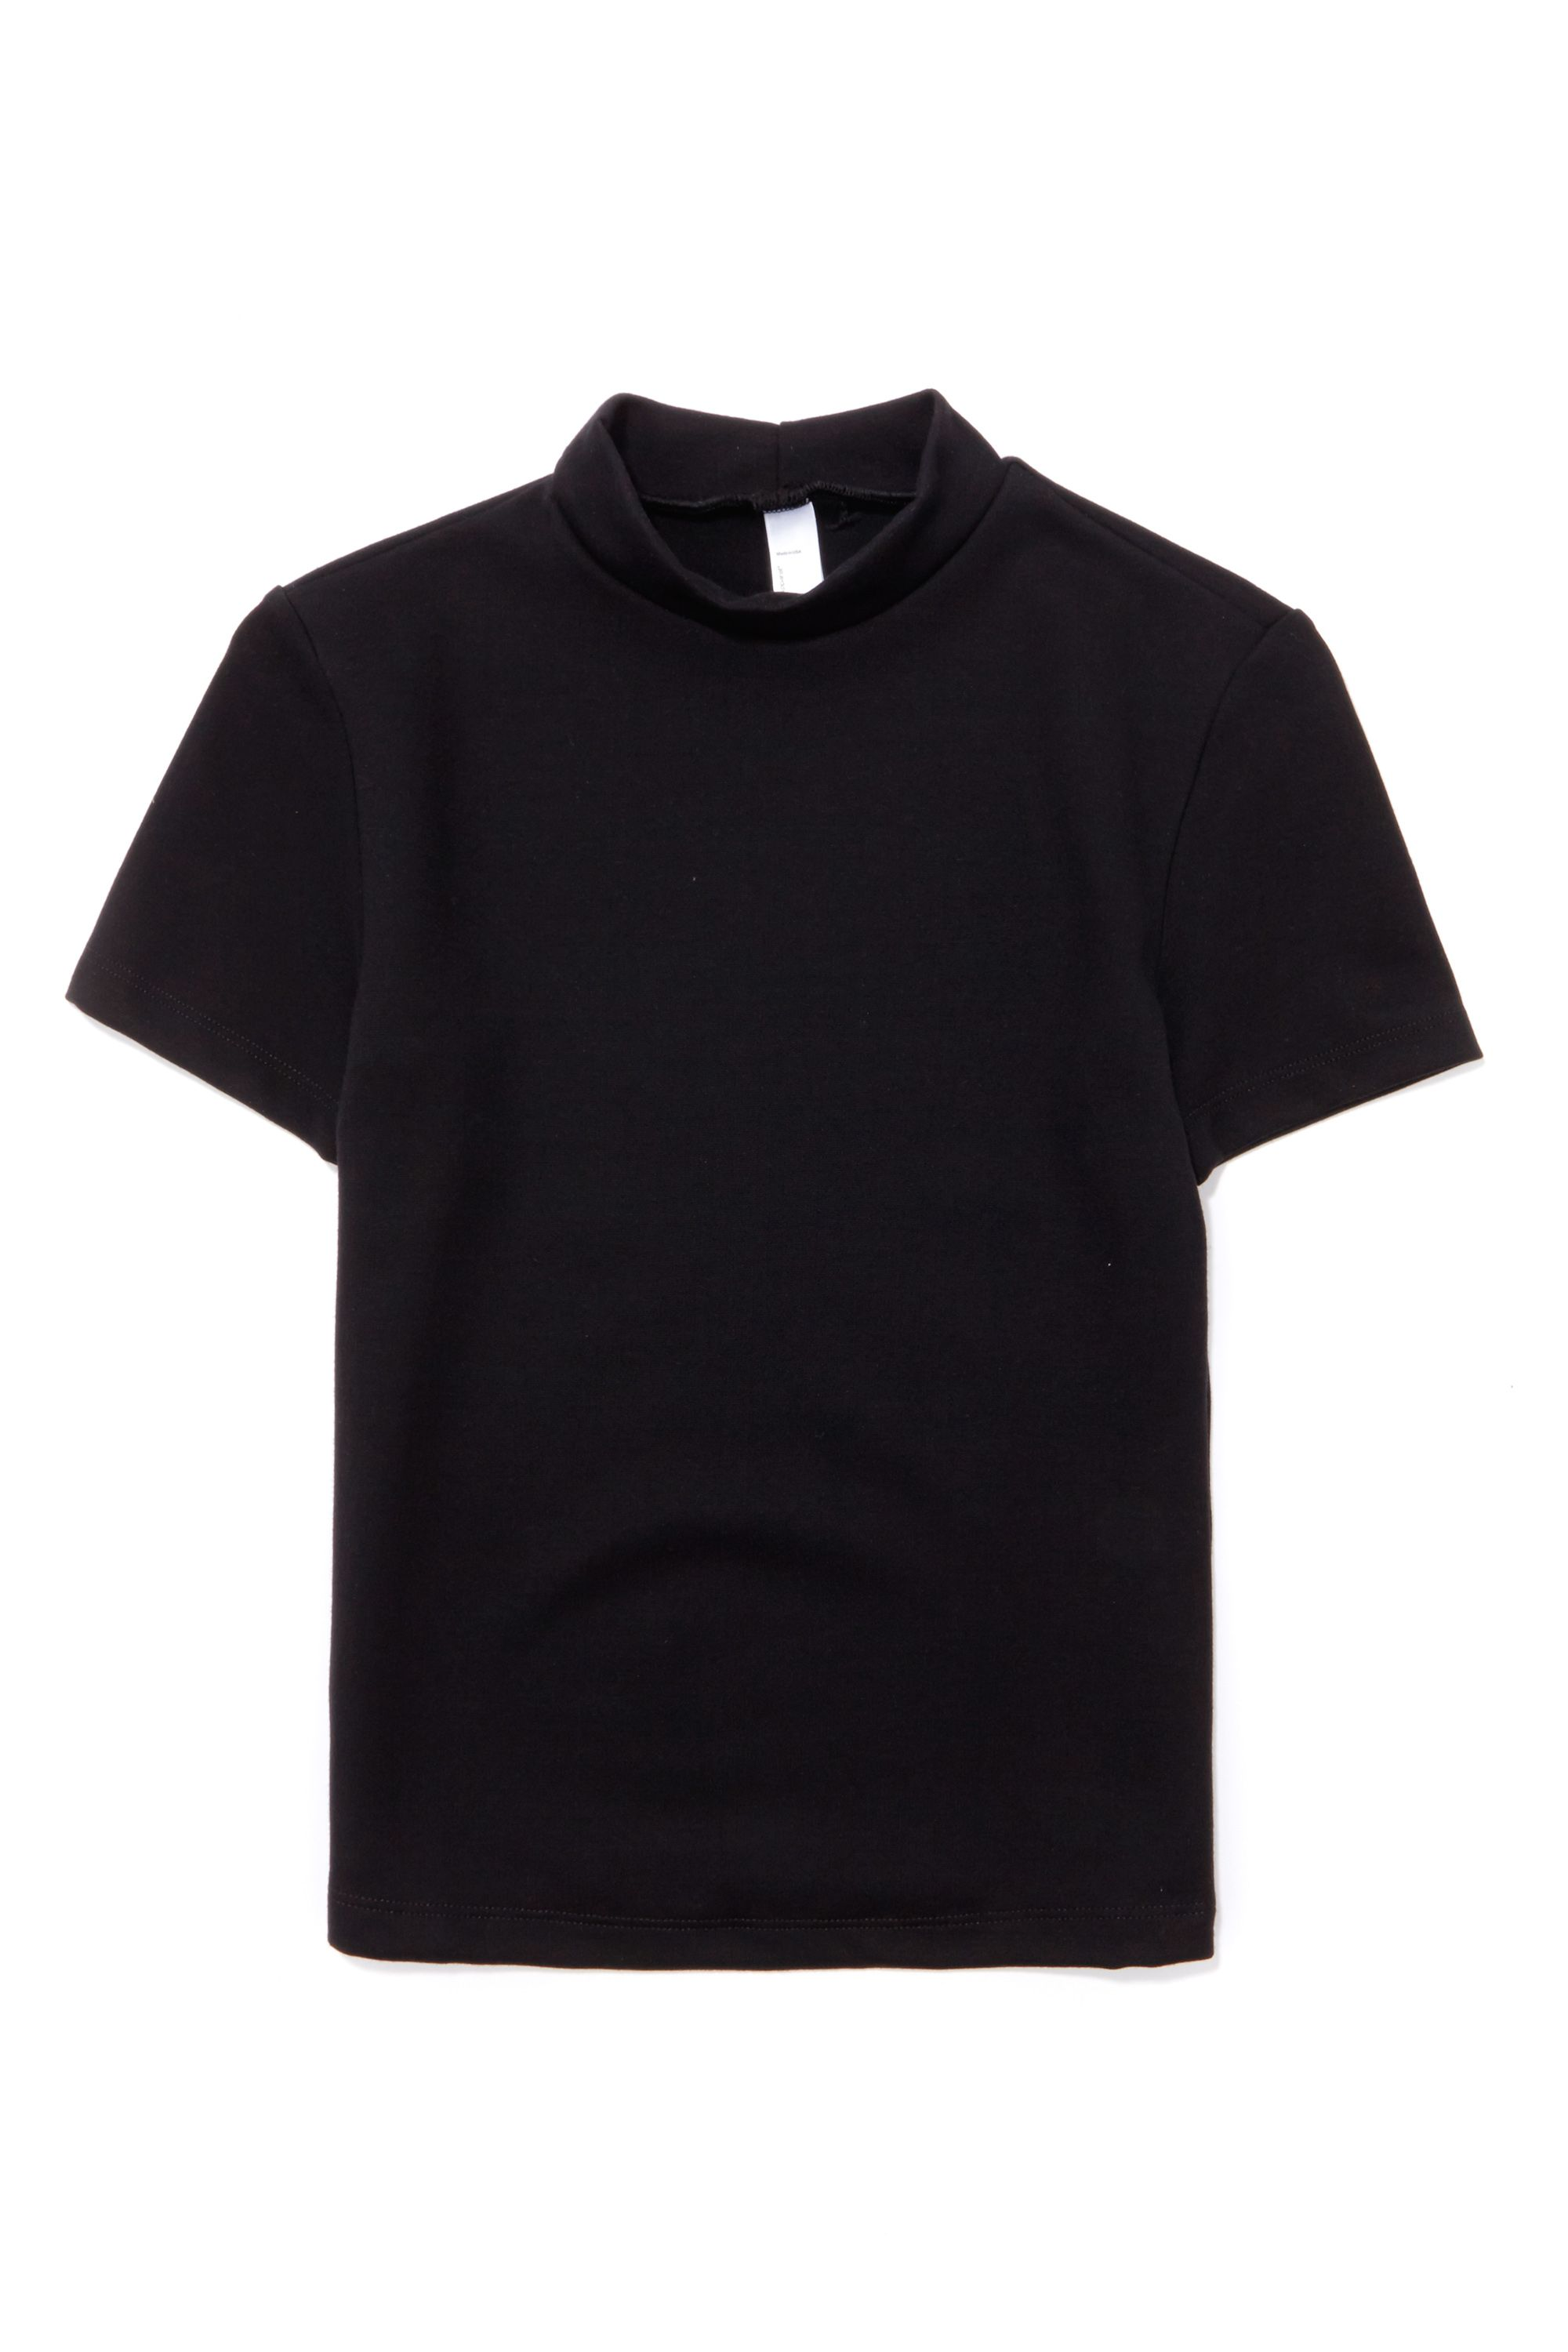 "<p>American Apparel Ponte Mock Neck Short Sleeve Top, $22; <a href=""https://urldefense.proofpoint.com/v2/url?u=http-3A__store.americanapparel.net_en_ponte-2Dmock-2Dneck-2Dshort-2Dsleeve-2Dtop-5Frsapo305-3Fc-3DBlack&d=DQMFaQ&c=B73tqXN8Ec0ocRmZHMCntw&r=MD9PON_3e_YfvBNZlbD4wy2VpCsZUH7wLDWAZkHMYao&m=9cloJ_LzZKN0ExiP98HDkvhBTWq_YEqBMPu4pJNdMrI&s=tOyvfUHvKc6KkzrQx8_1QJwezRN8fcEsHKS-GhknDGk&e="" target=""_blank"">americanapparel.net</a></p>"